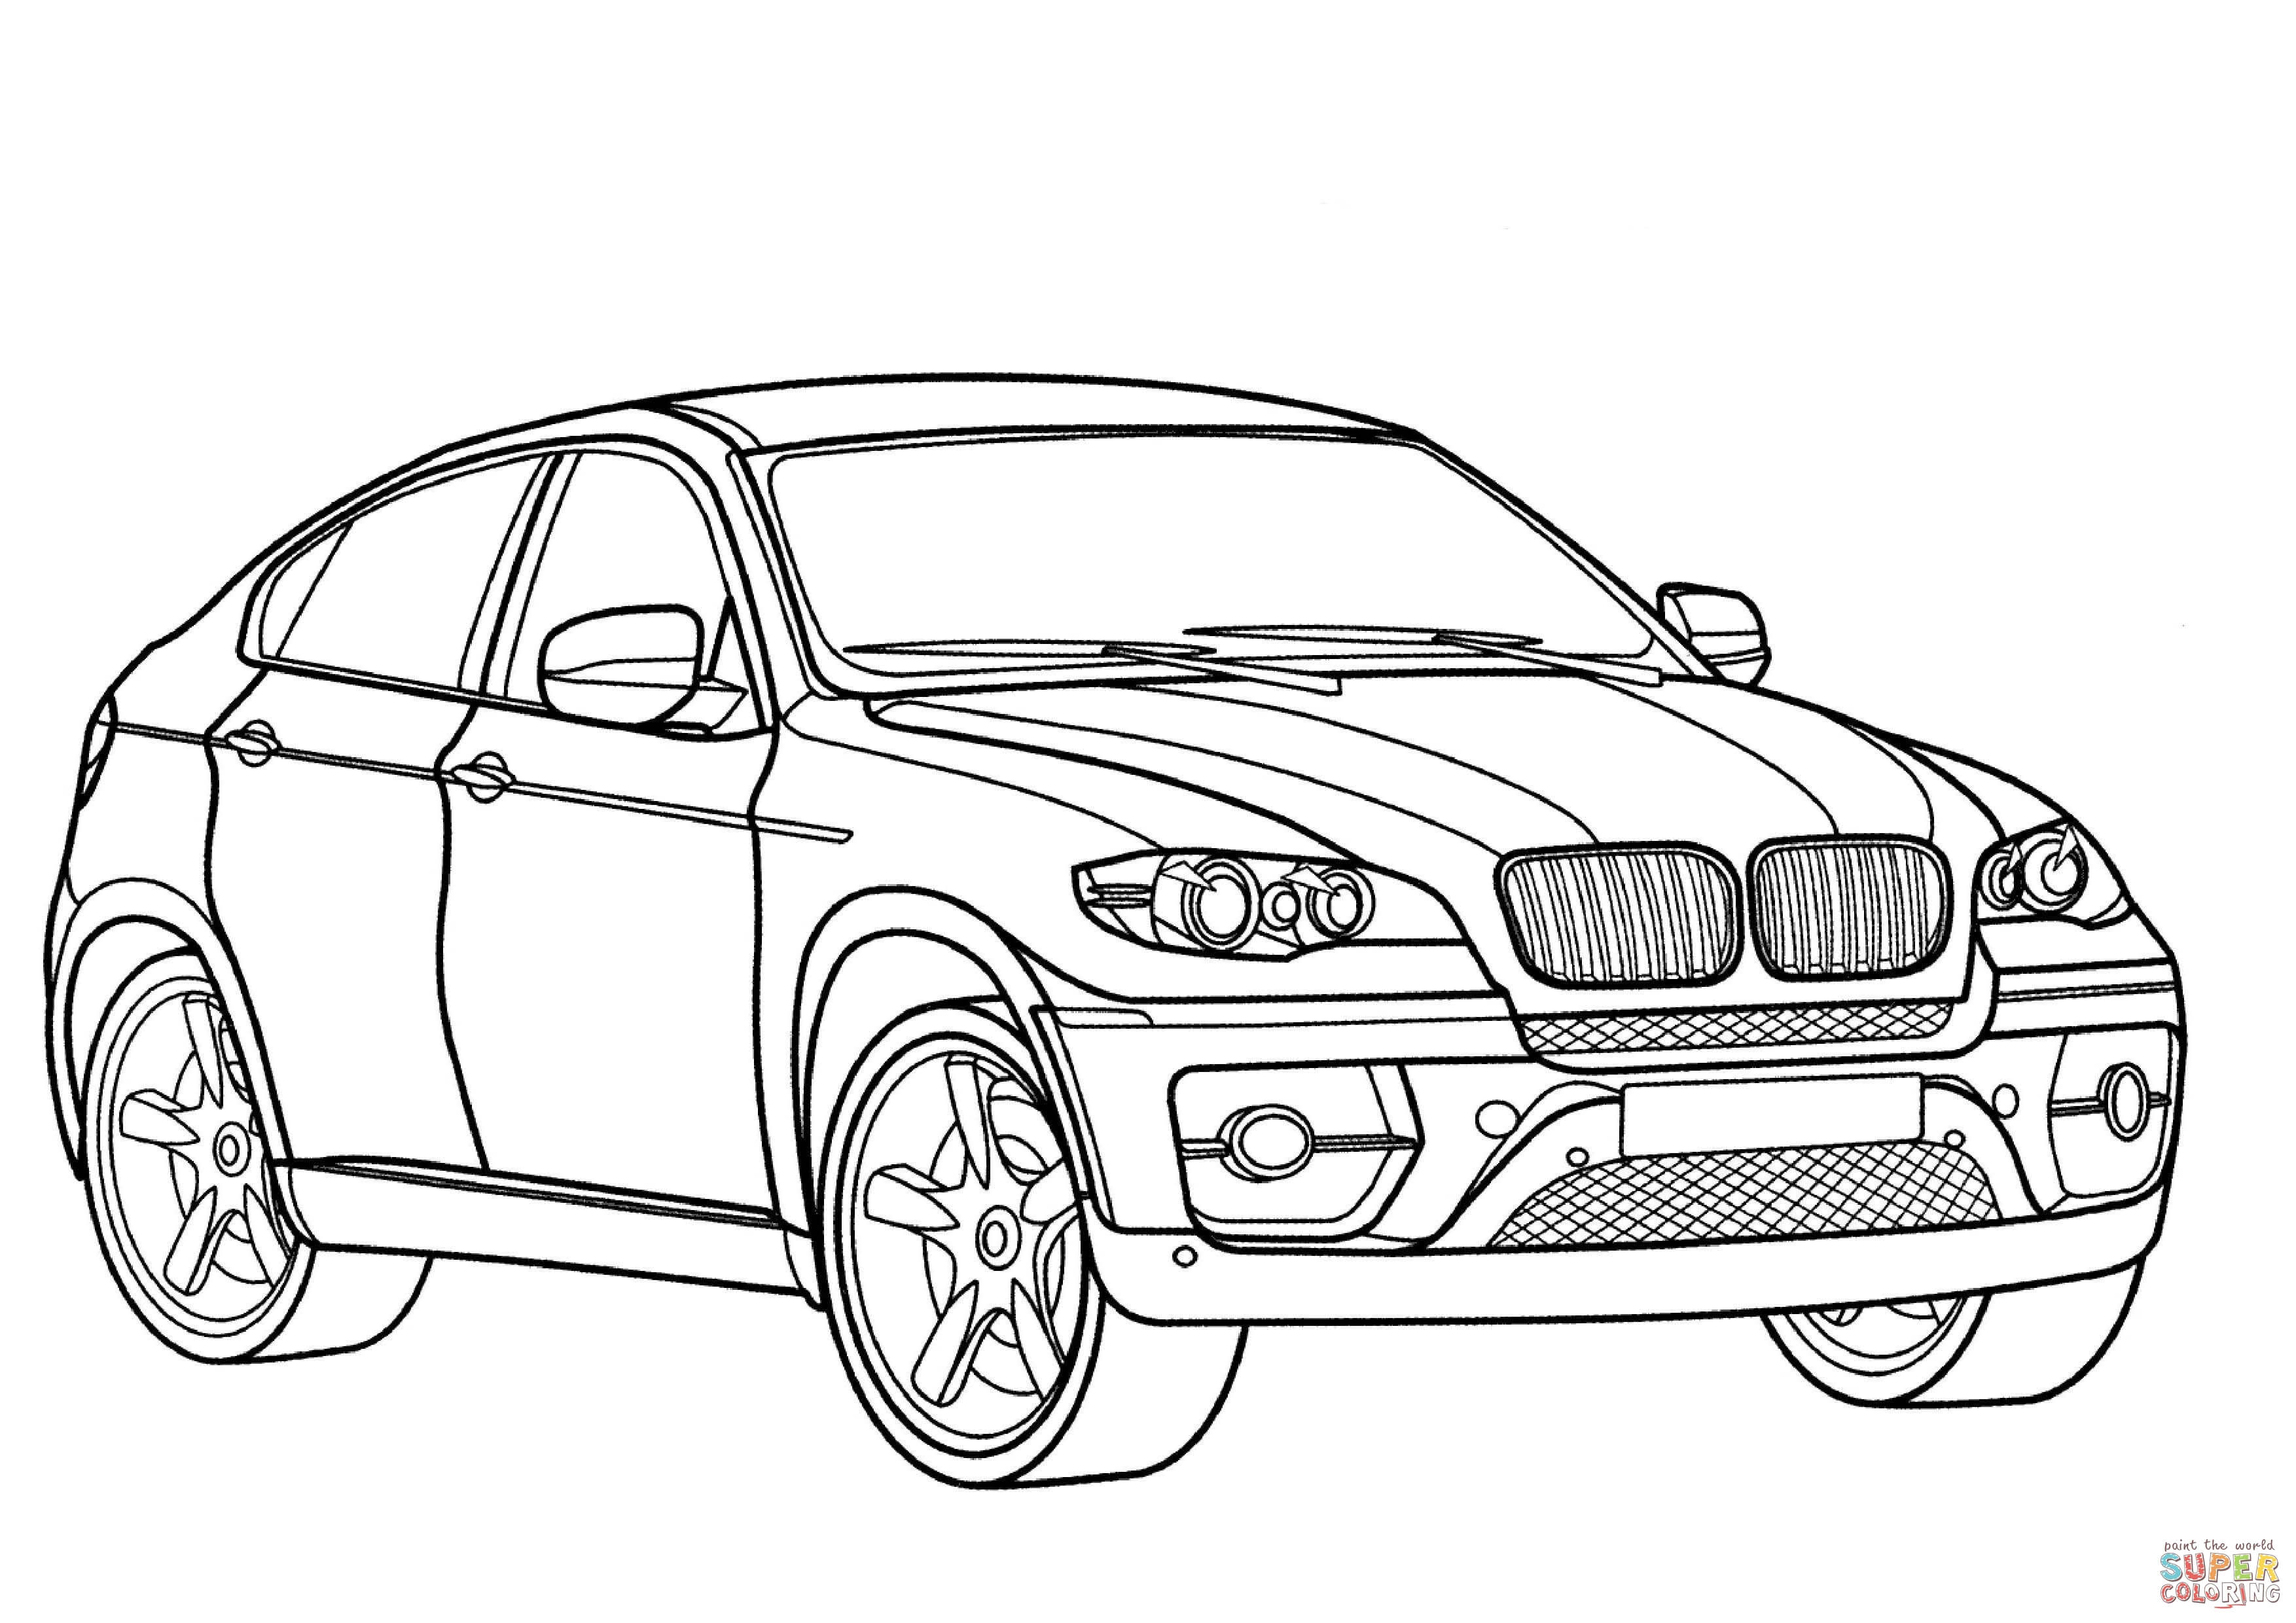 bmw 3 series ledningsdiagram free auto electrical wiring diagram 2006 Mustang GT Fuse Diagram bmw x6 coloring page